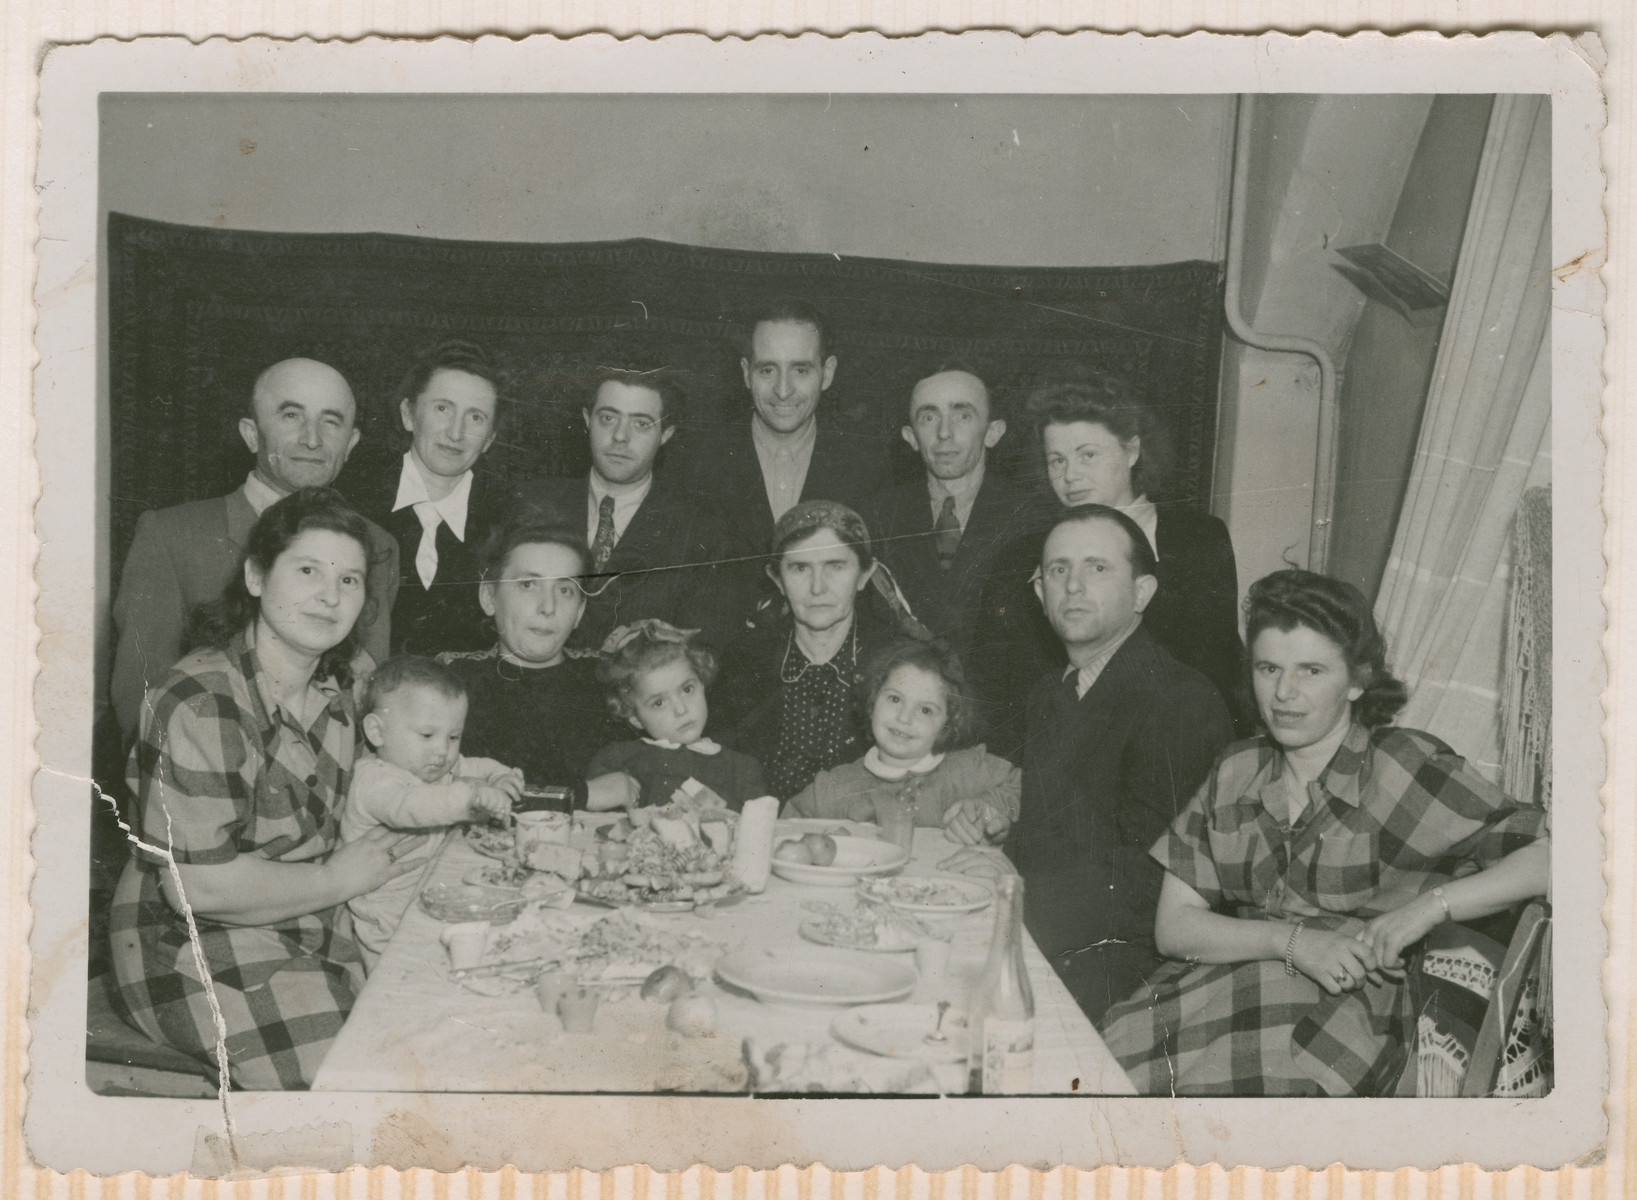 A group of men, women and children gather for a meal in the Schlachtensee displaced persons camp.